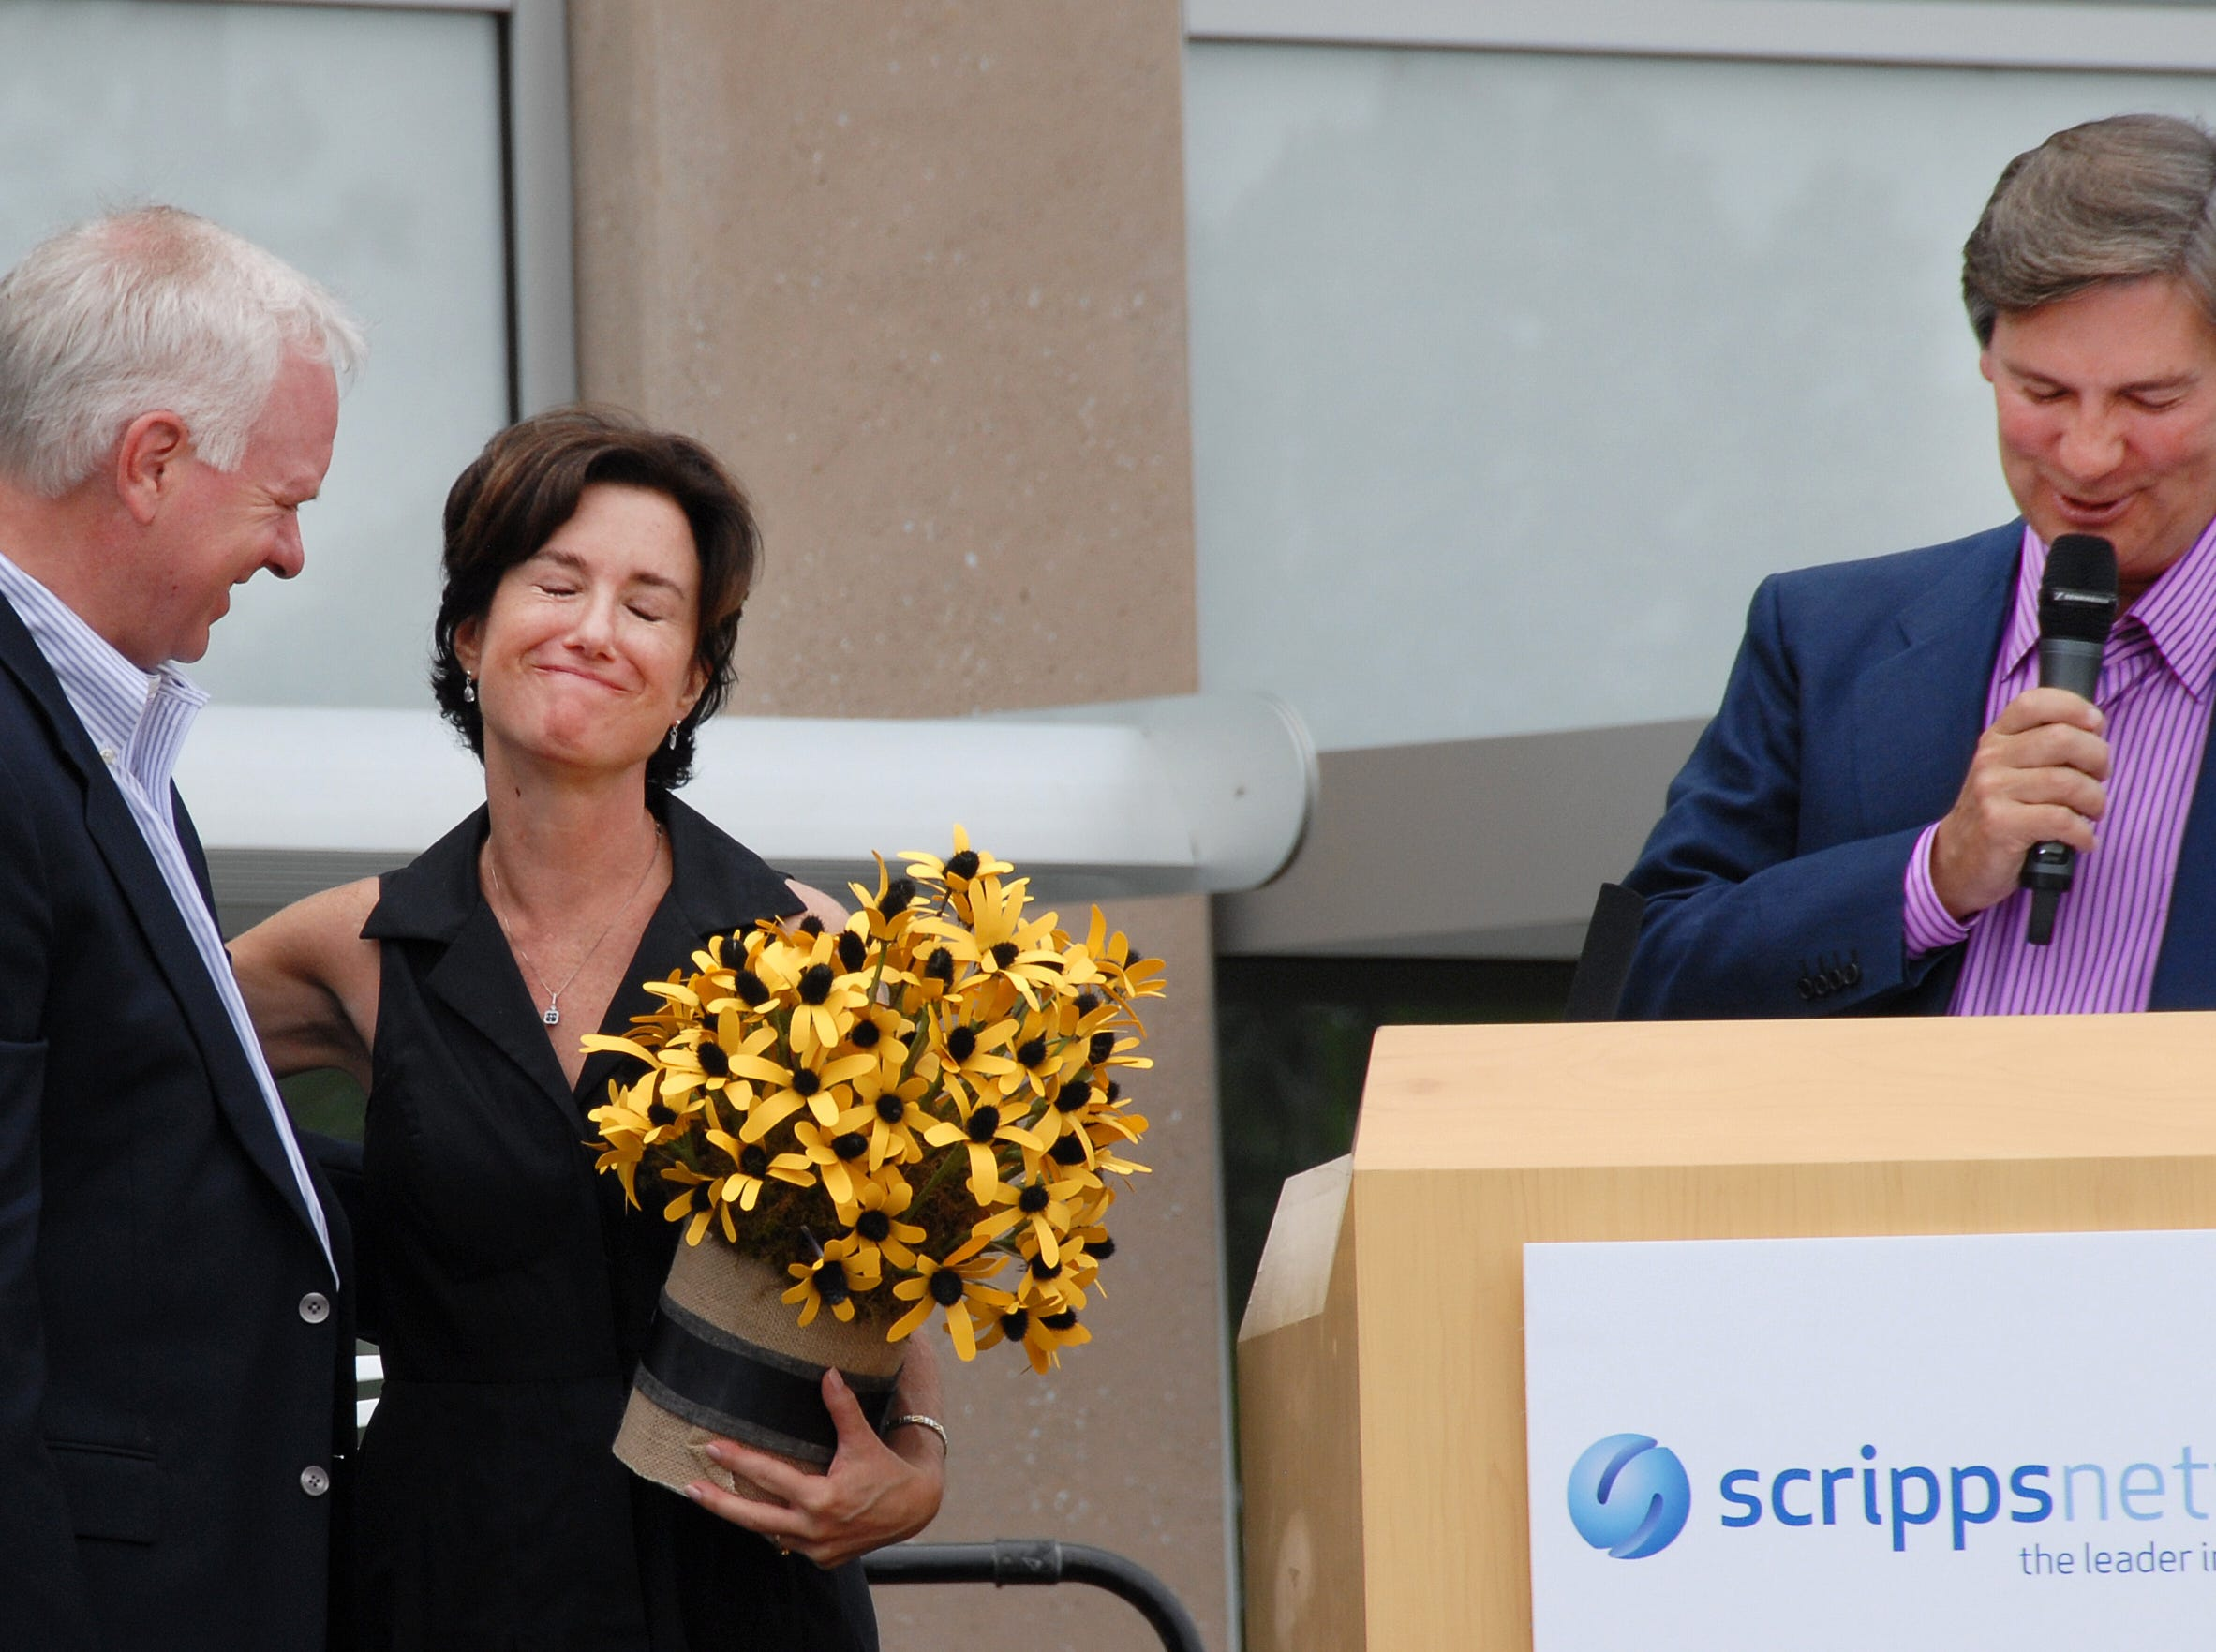 Scripps Networks President John Lansing left , and Scripps Networks Interactive CEO Ken Lowe, present Susan Packard, co-founder of HGTV and president of brand outreach for Scripps Networks Interactive, with flowers and the announcement of a park named for her 'Packard Park' on the grounds of the new 150,000-square-foot expansion of their headquarters Saturday May 15, 2010.